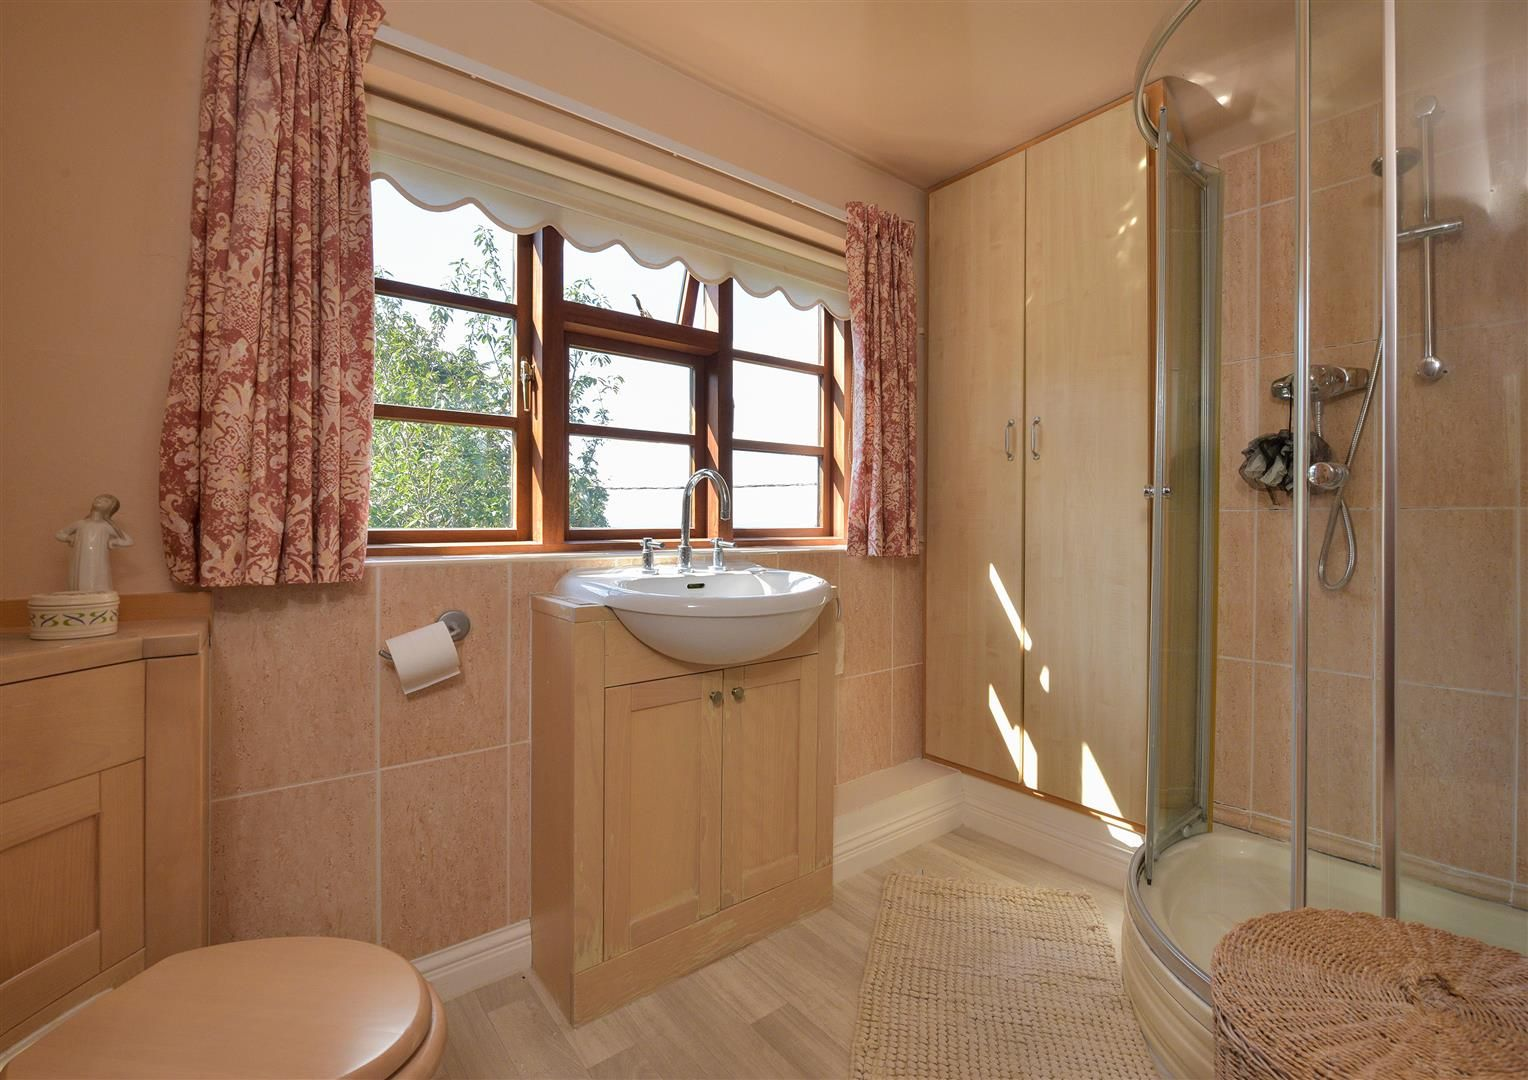 2 bed semi-detached for sale in Clent  - Property Image 9